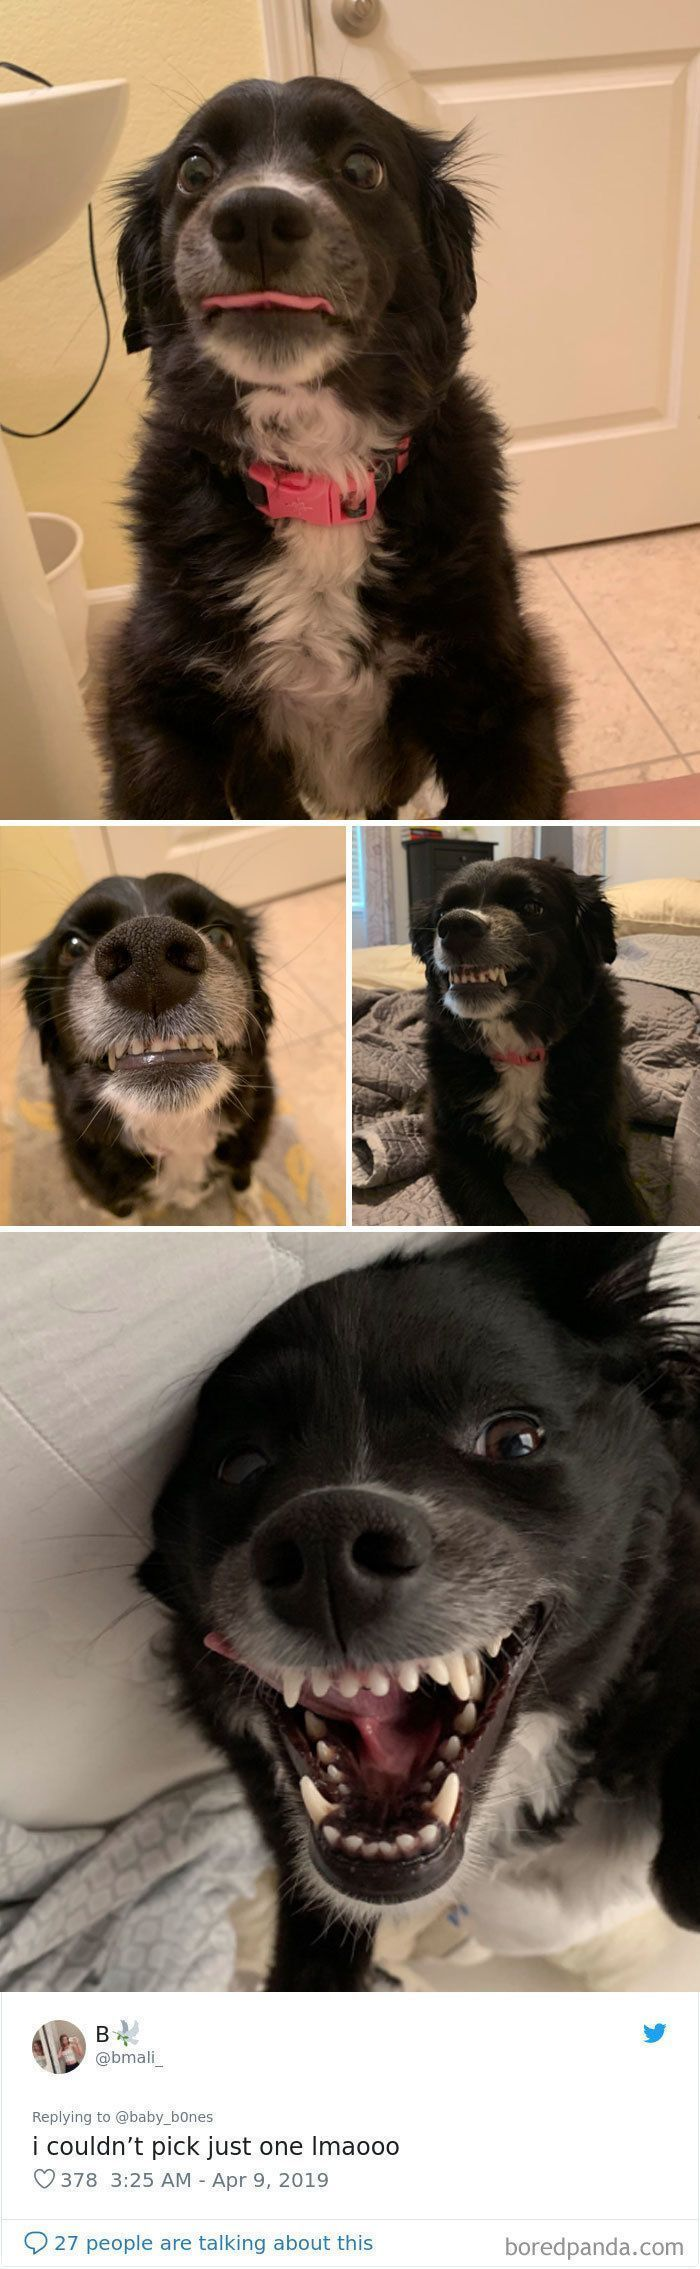 People Are Sharing The Most Unflattering Pics Of Their Pets And It's Hilarious (30 Pics)